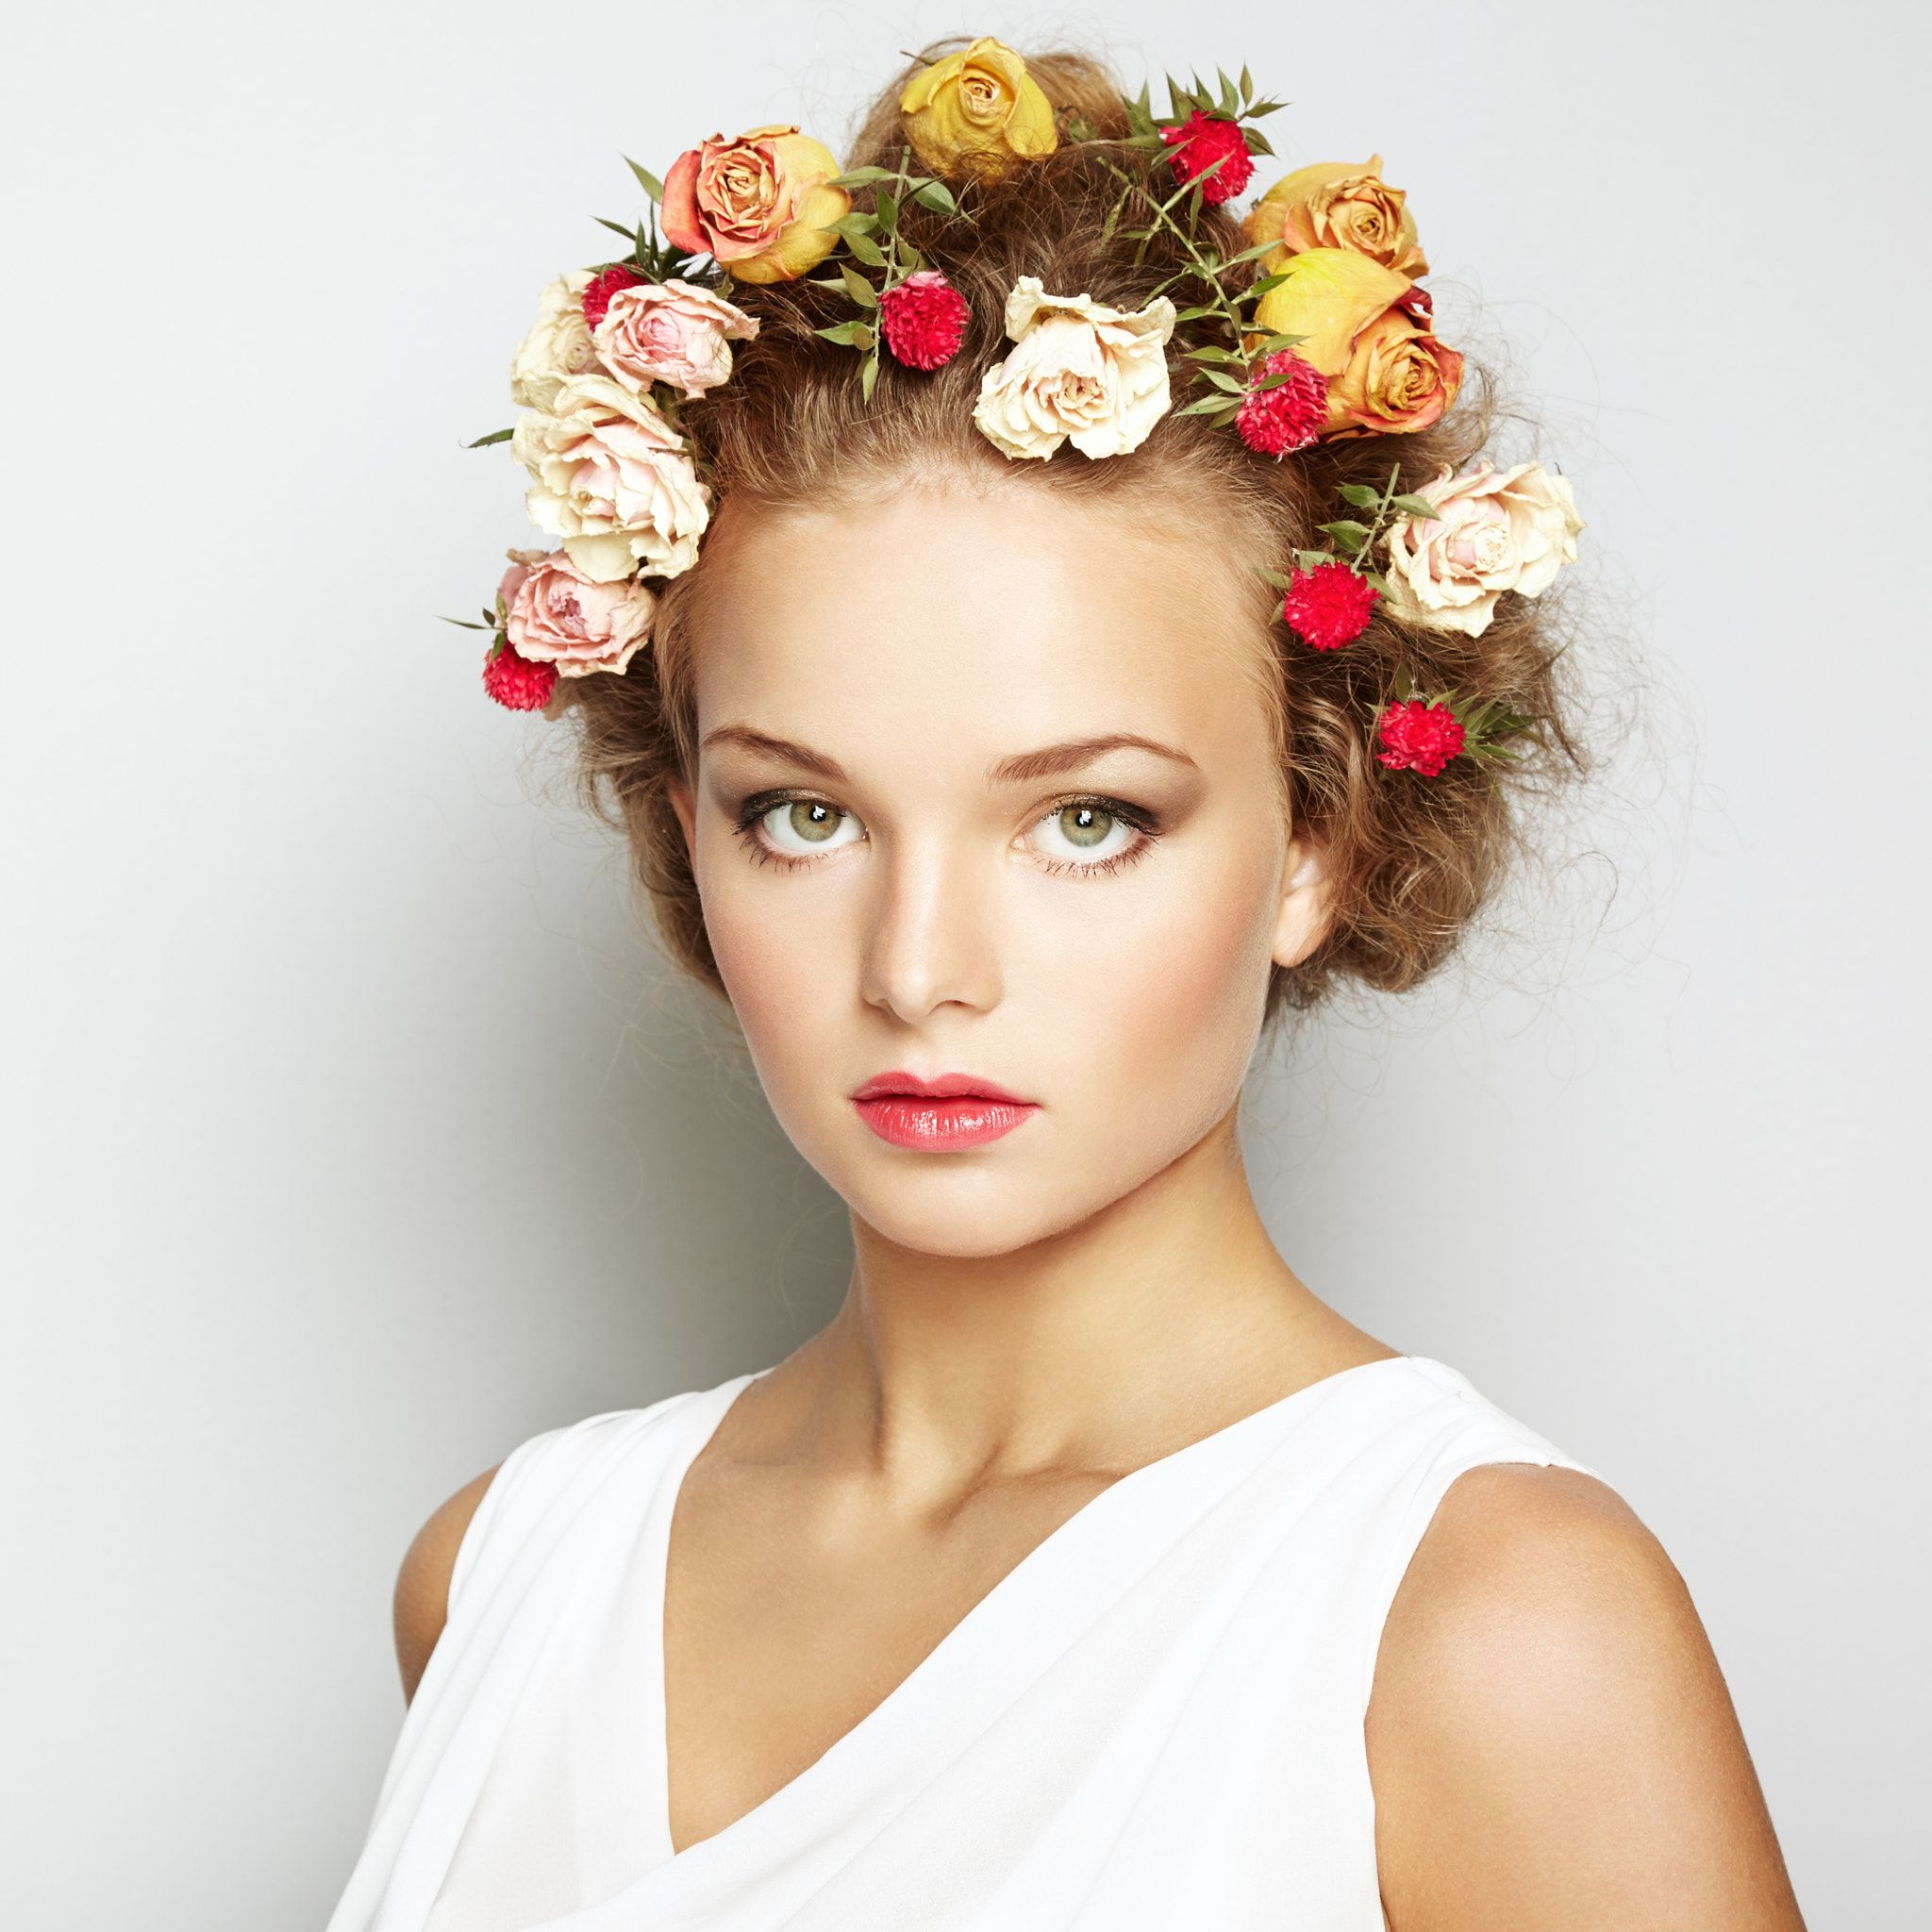 Beautiful woman with flowers perfect face skin beauty portrait beautiful woman with flowers perfect face skin beauty portrait beautiful woman with flowers izmirmasajfo